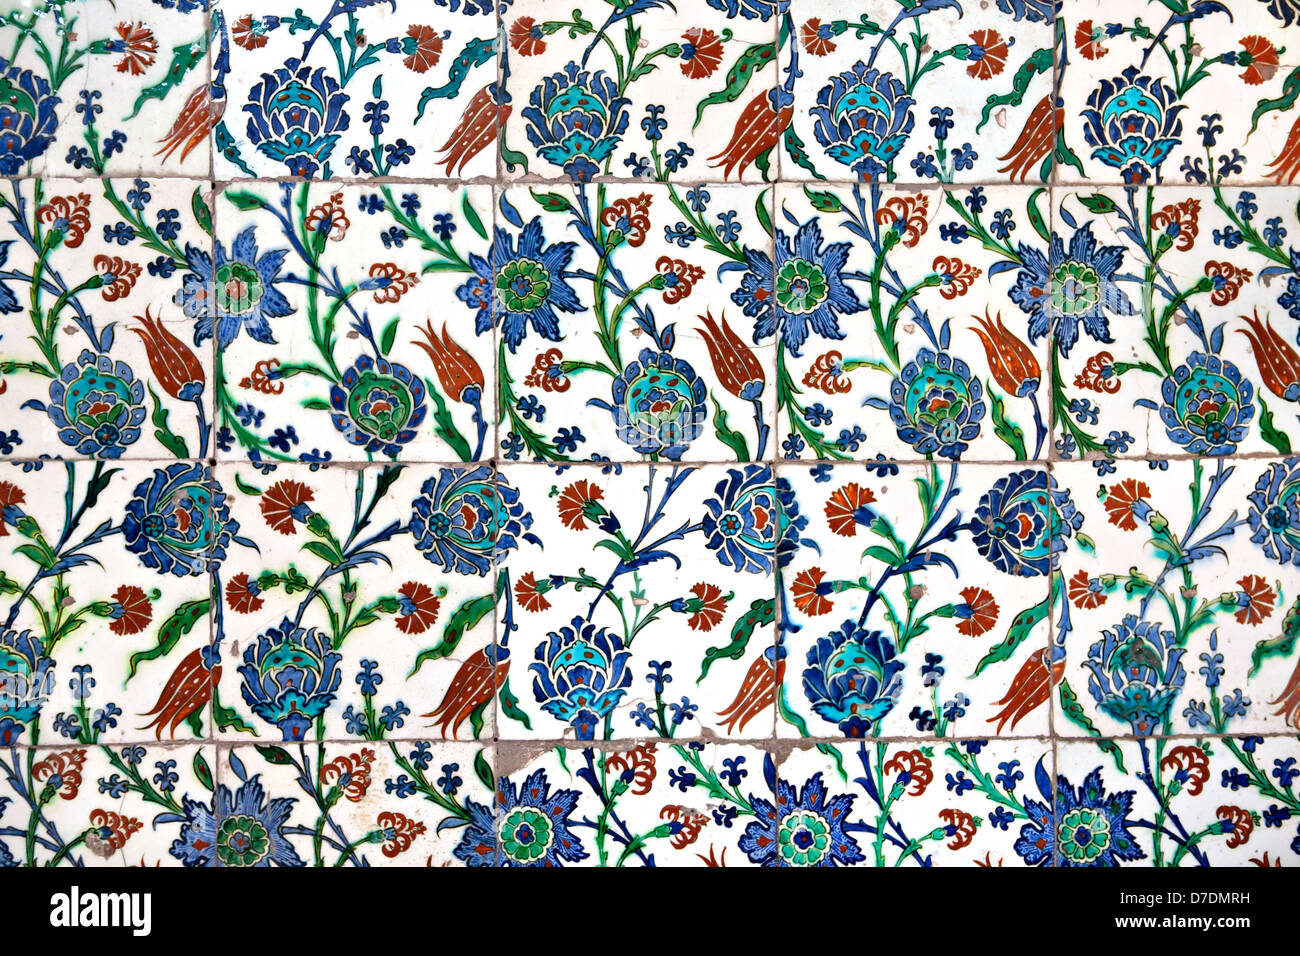 Wall tiles in Sultanahmet Mosque, Istanbul, Turkey - Stock Image